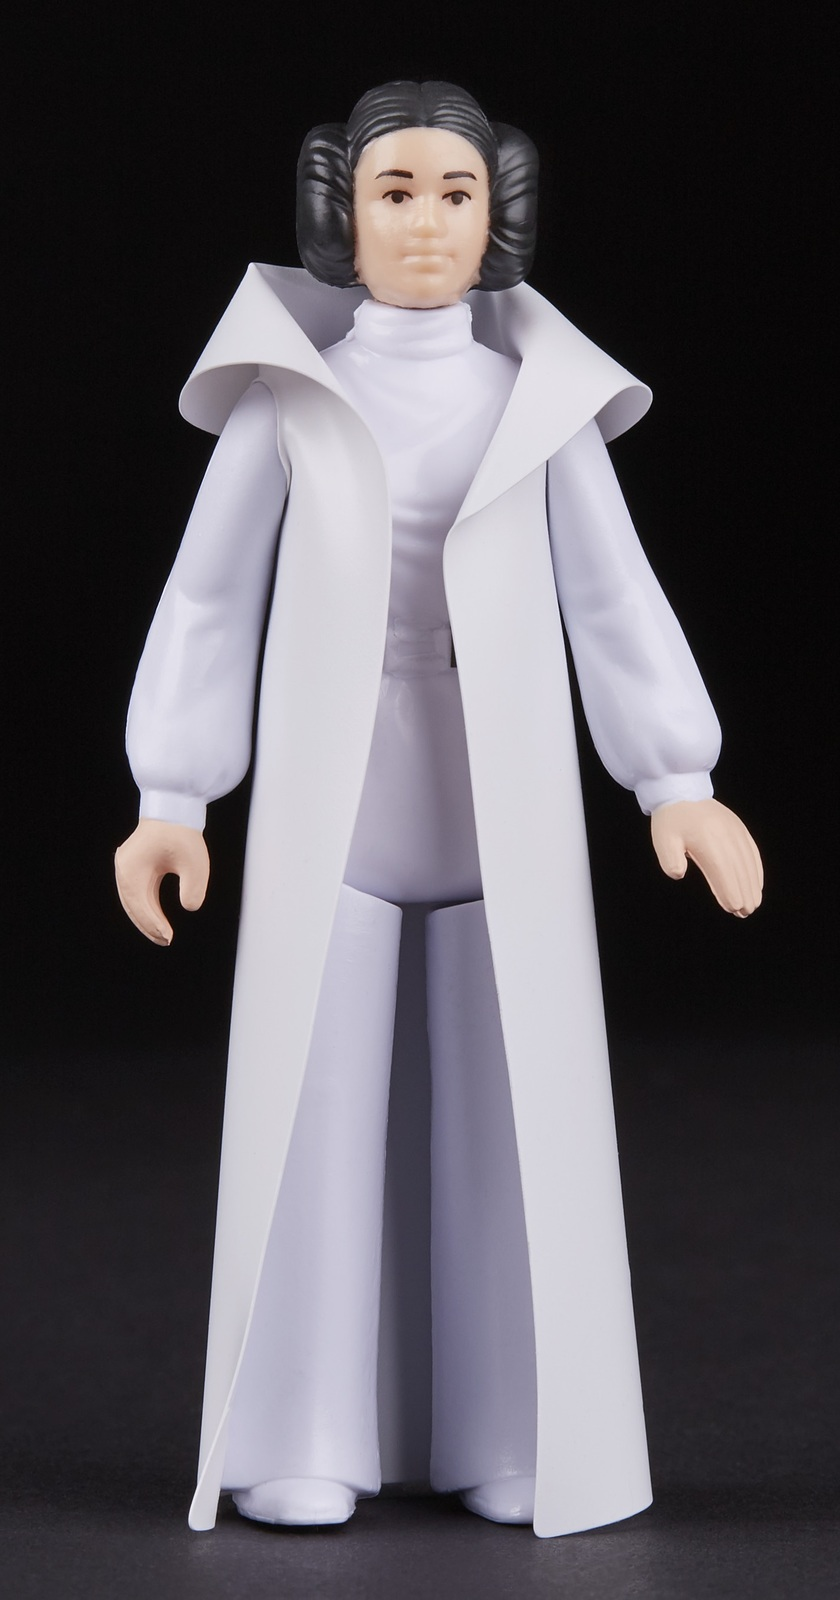 "Star Wars: Princess Leia - 3.75"" Retro Action Figure image"